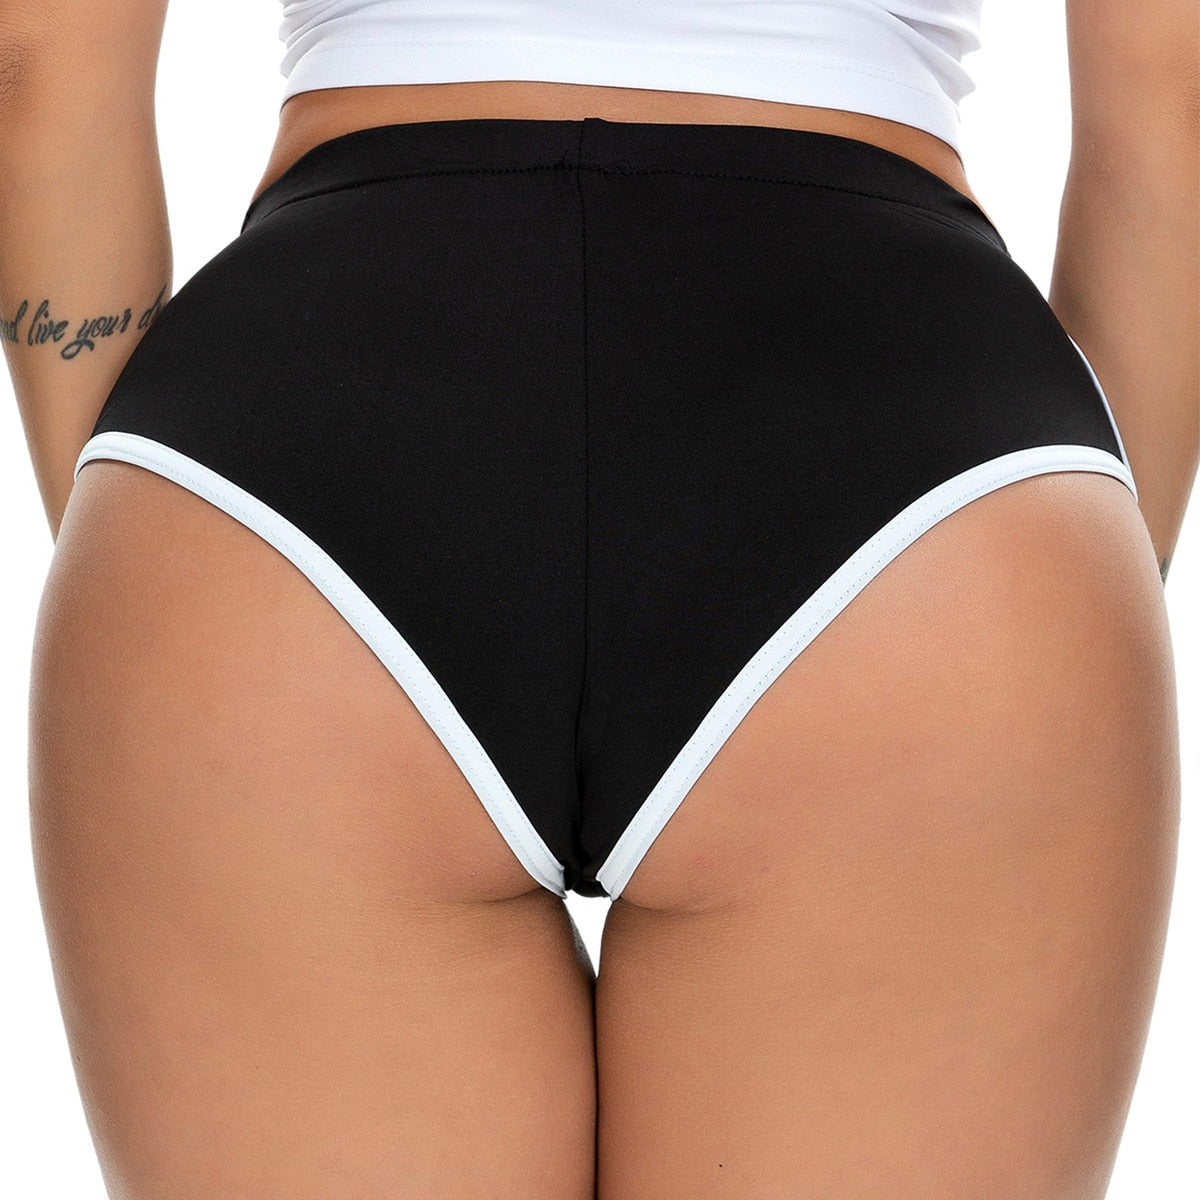 Women's Yoga Shorts Summer Mid-rise Elastic Waistband White Edge Booty Yoga Shorts Sports Gym Workout Fitness Dolphin Shorts - Smoulder Products